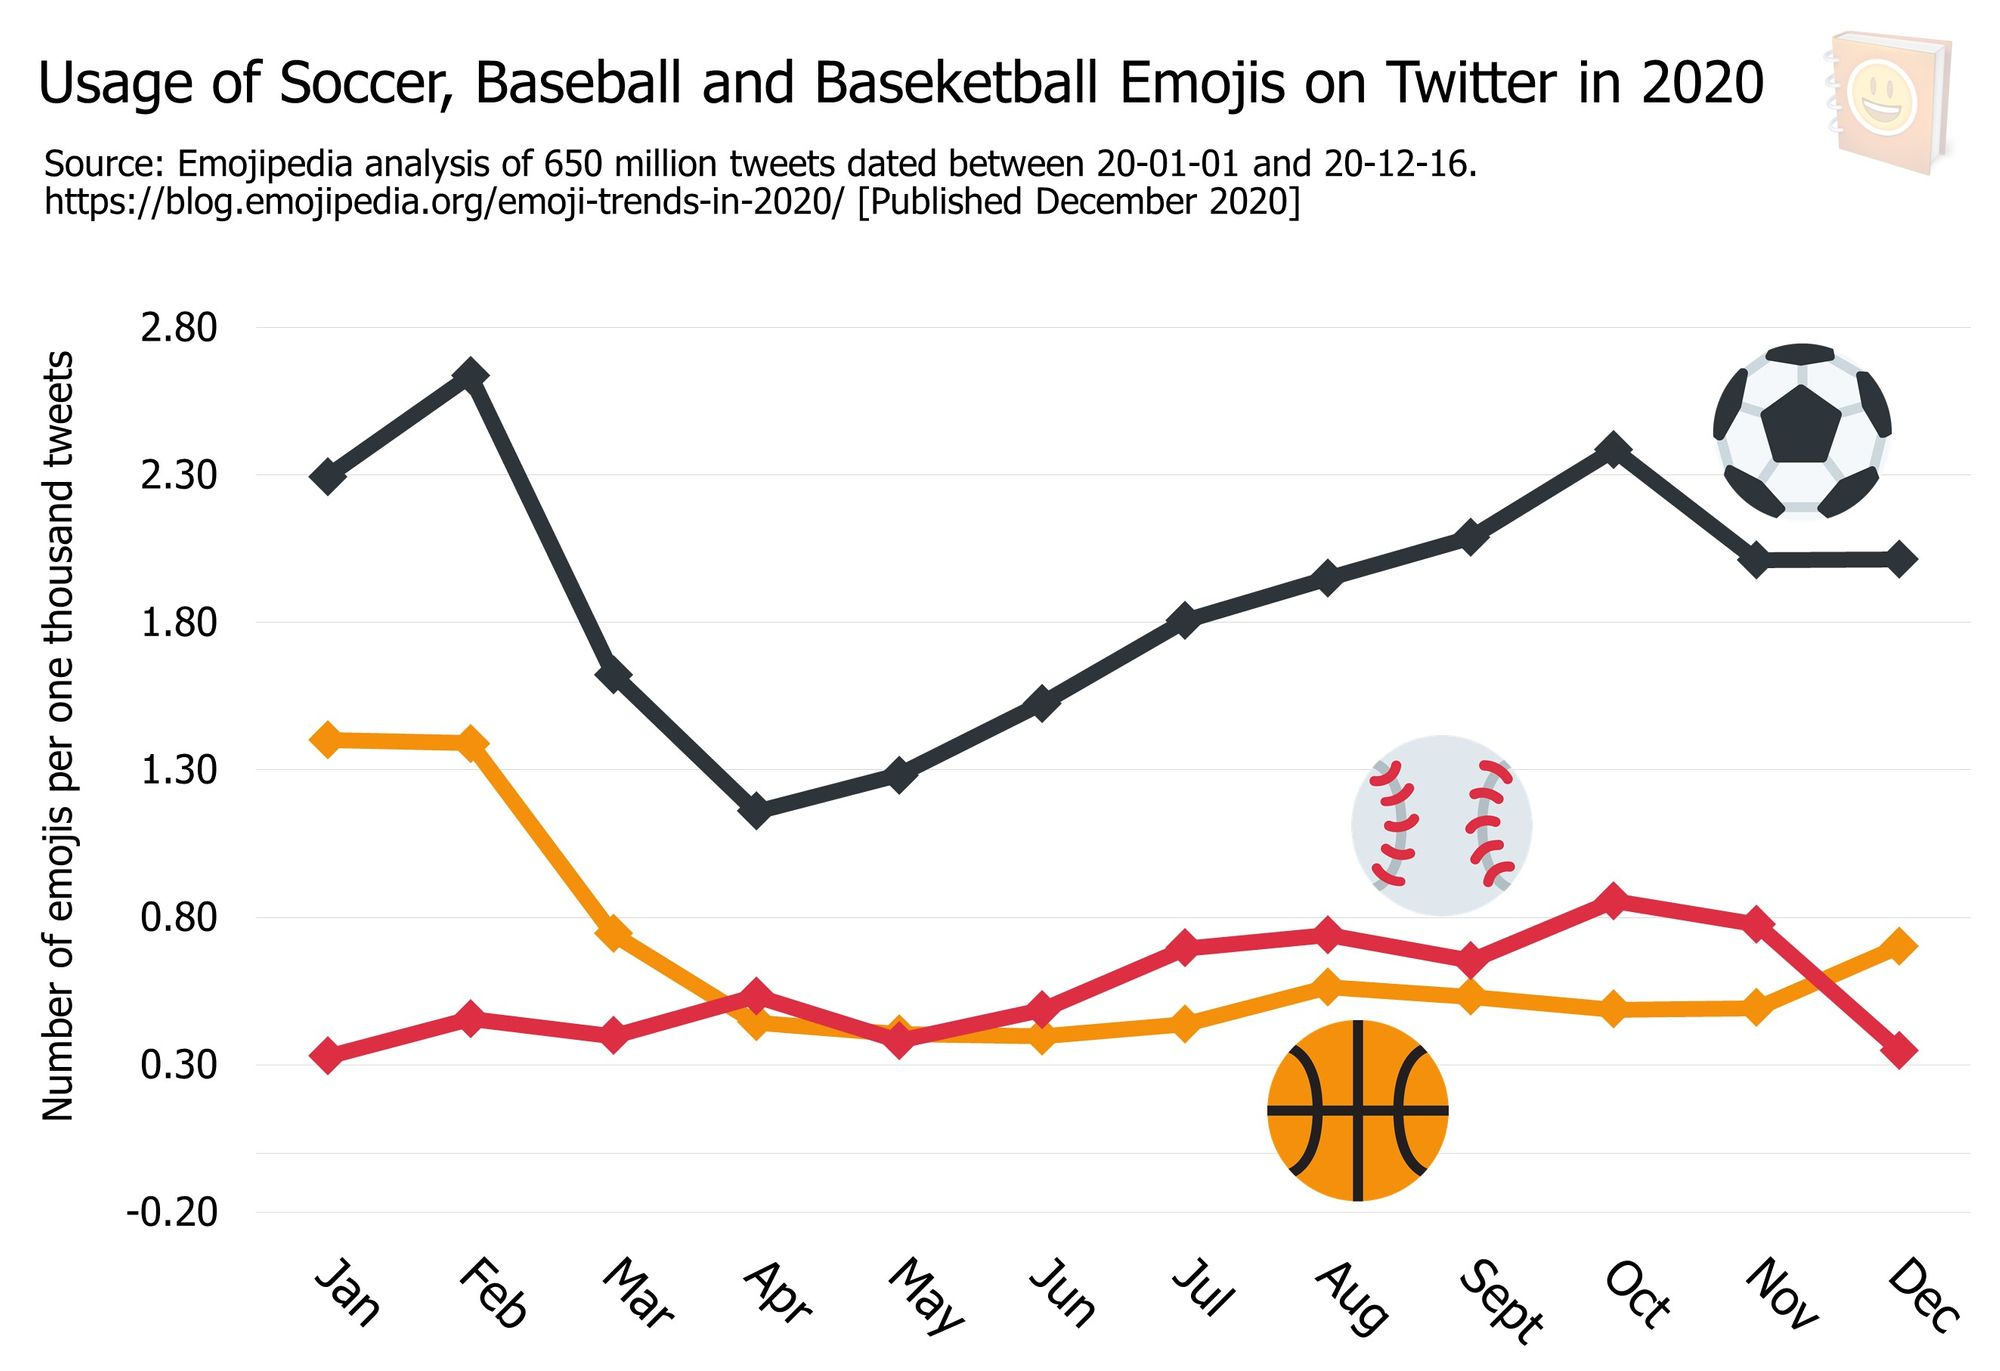 Emoji-Trends-In-2020---Usage-of-Soccer--Baseball-and-Baseketball-Emojis-on-Twitter-in-2020